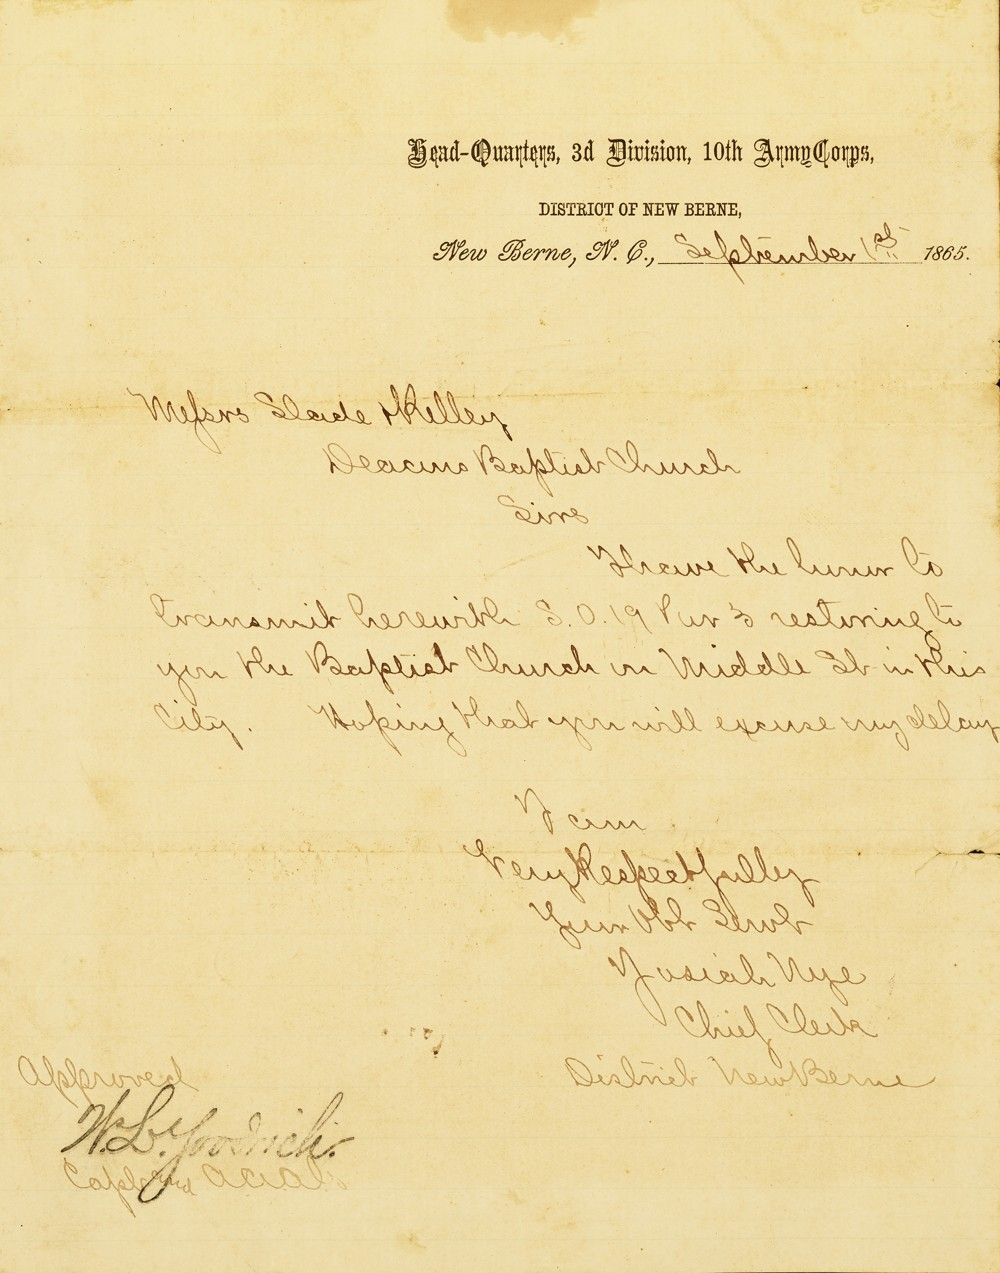 A letter sent from the headquarters of the 3rd Division, 10th Army Corps returning the church to the Deacons of First Baptist Church.